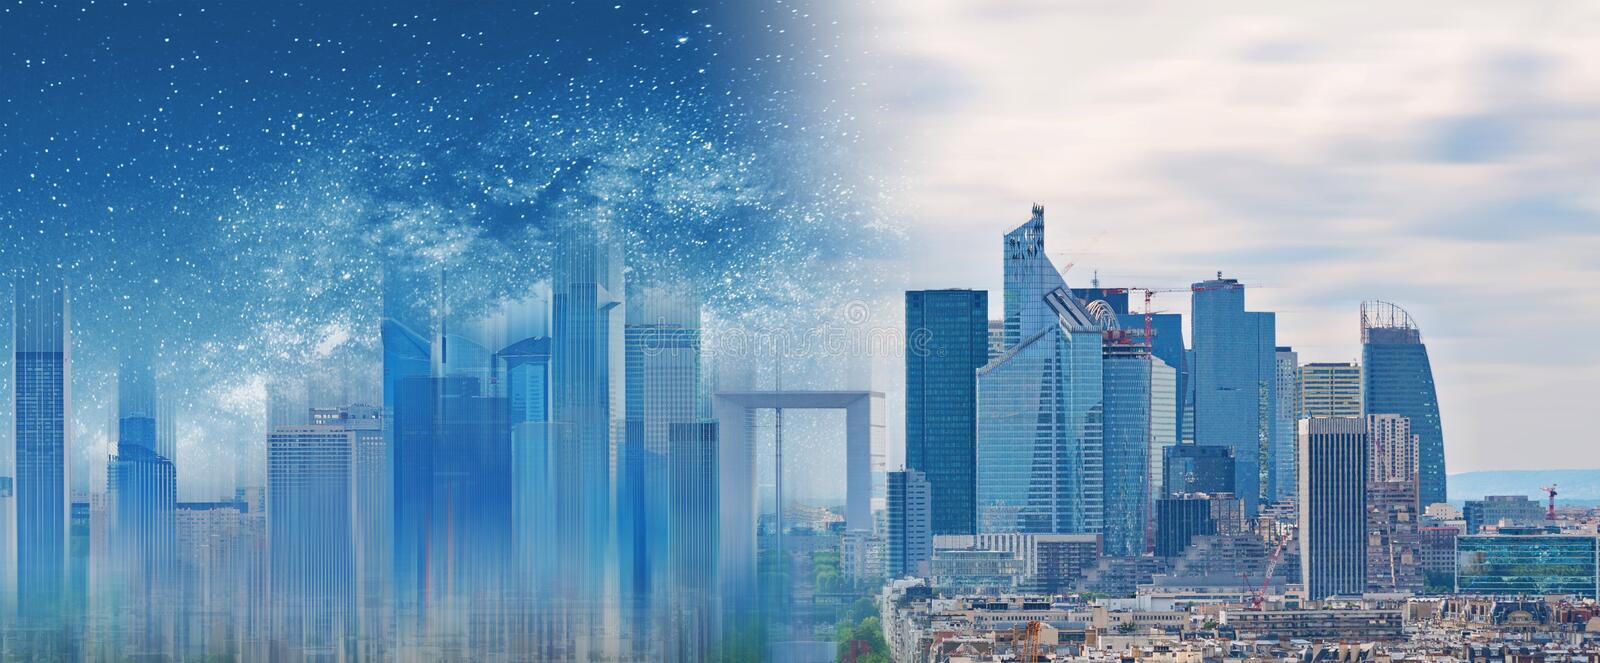 Futuristic digital city development, modern city with glowing light of futuristic building hologram. Futuristic digital city developments, modern city with royalty free stock photos